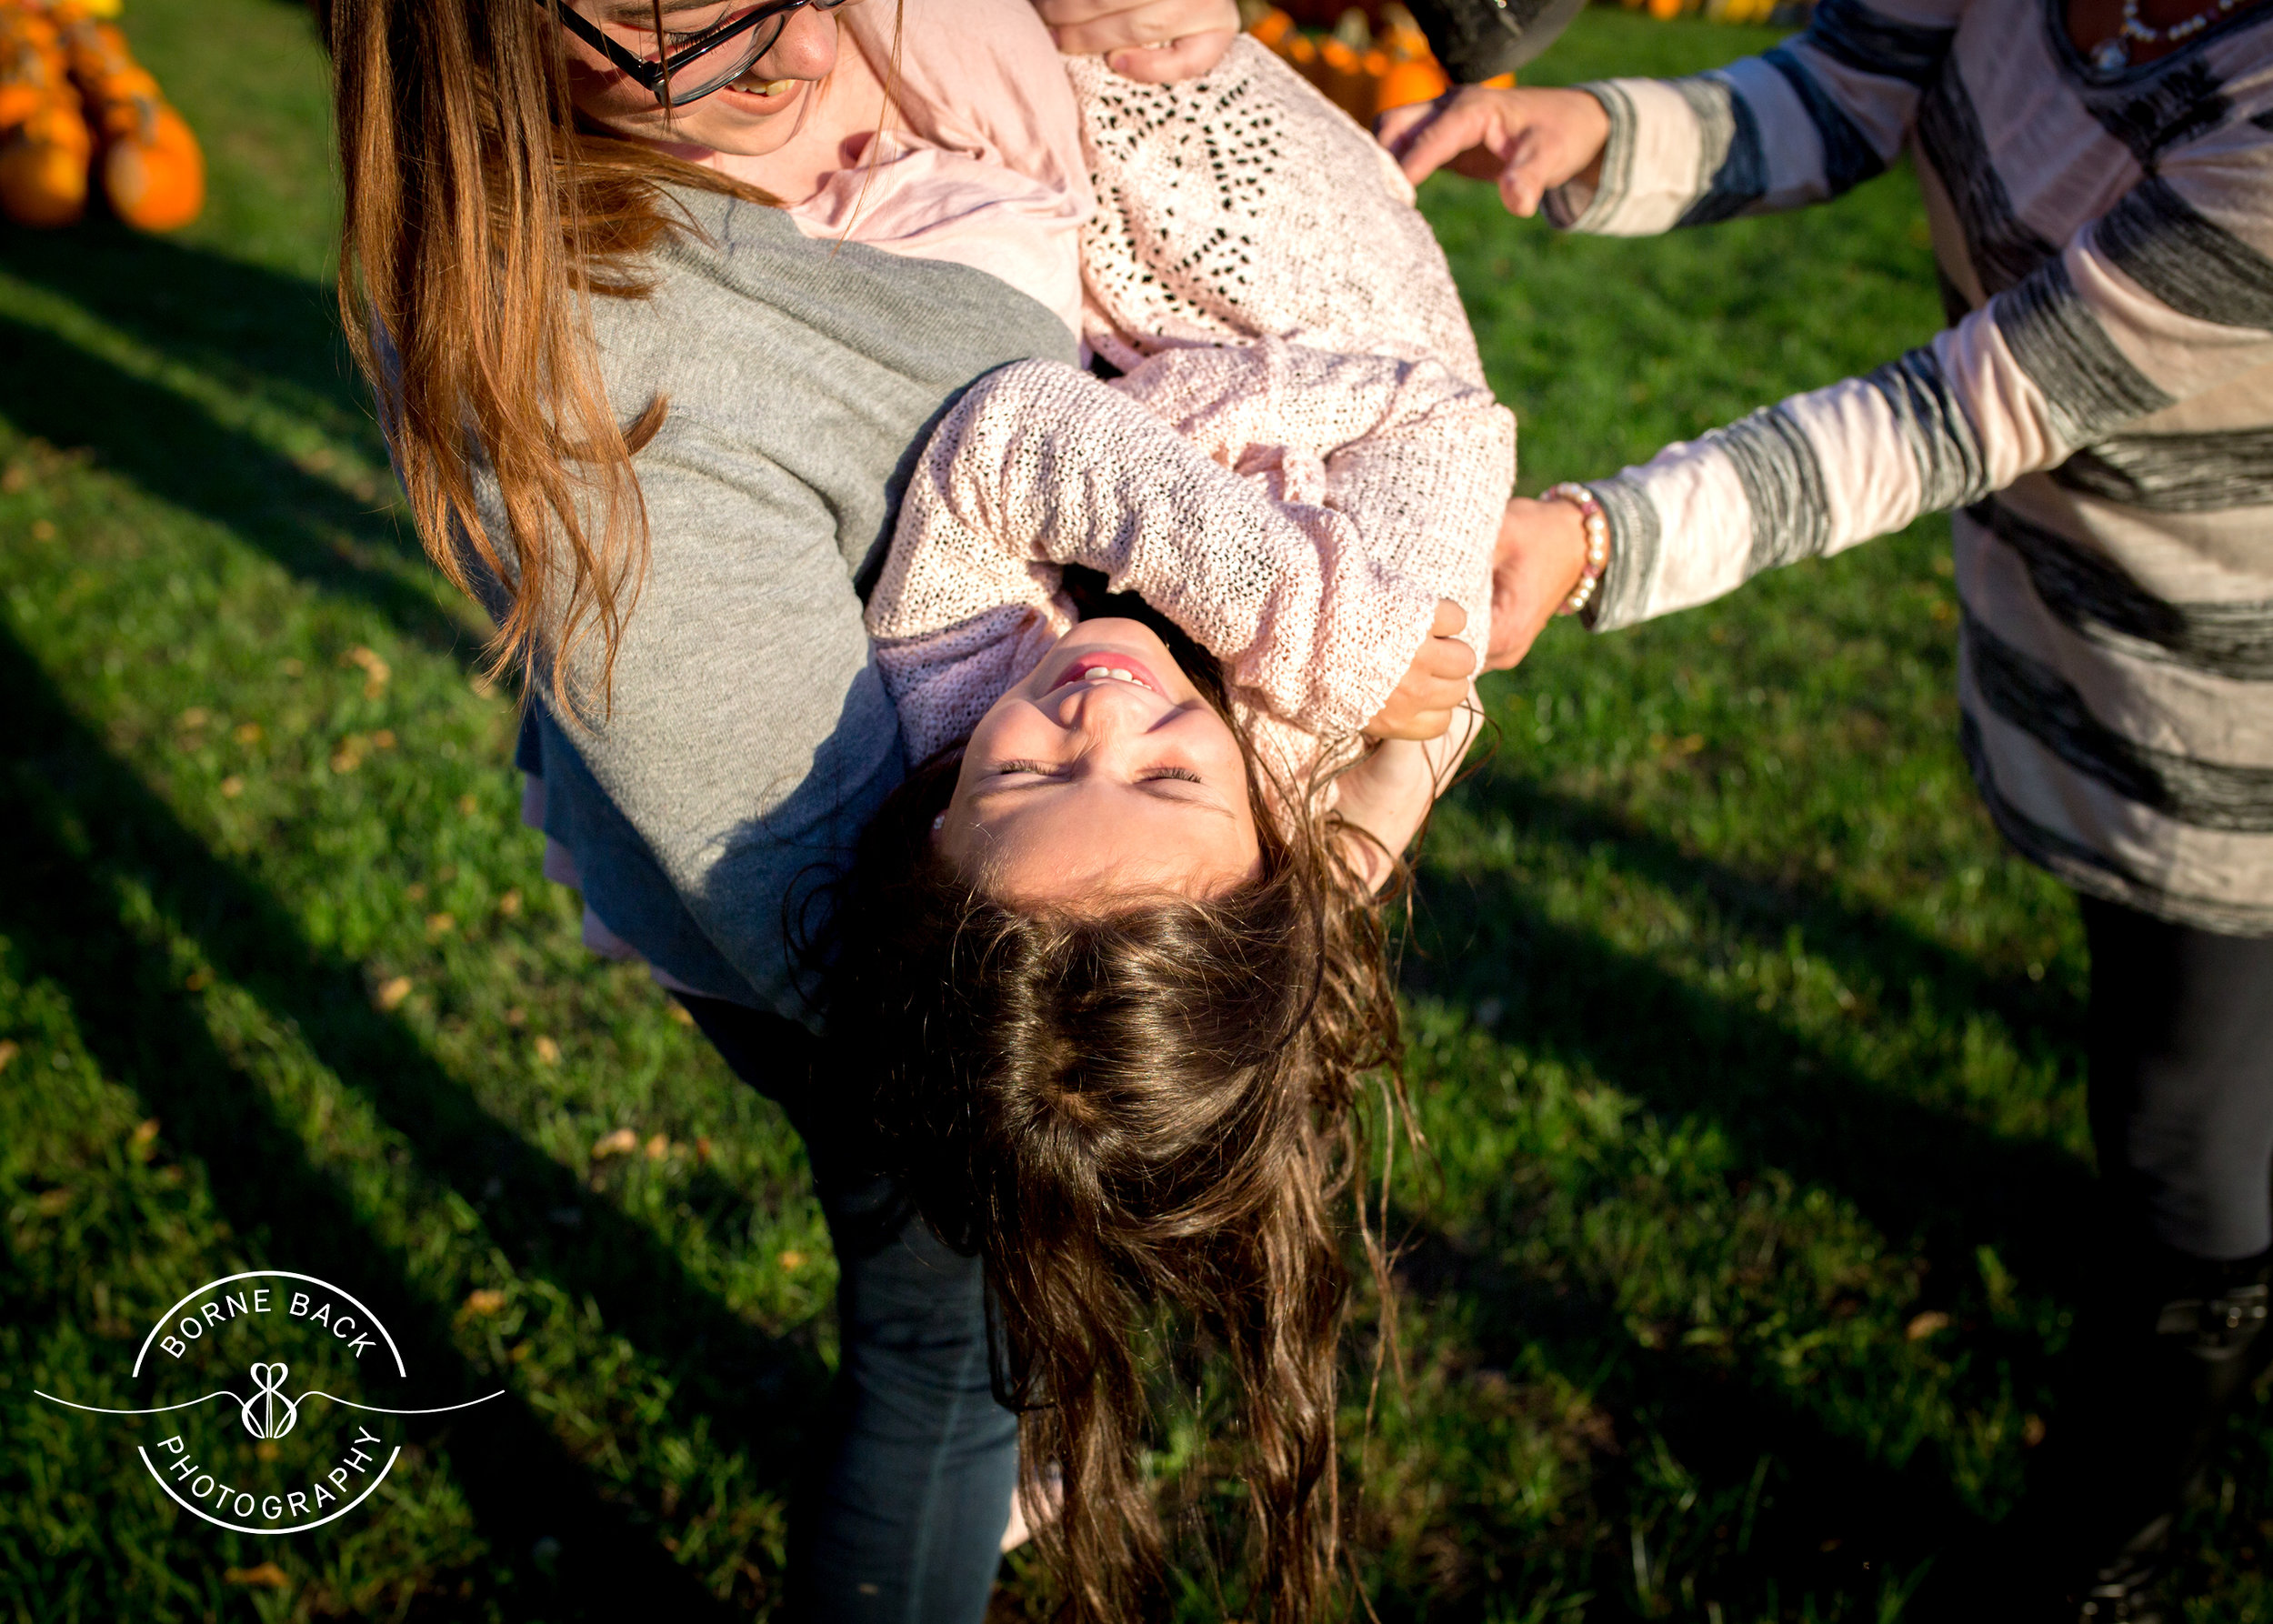 This little girl had so much joy in her heart that all of her older siblings were drawn to her.